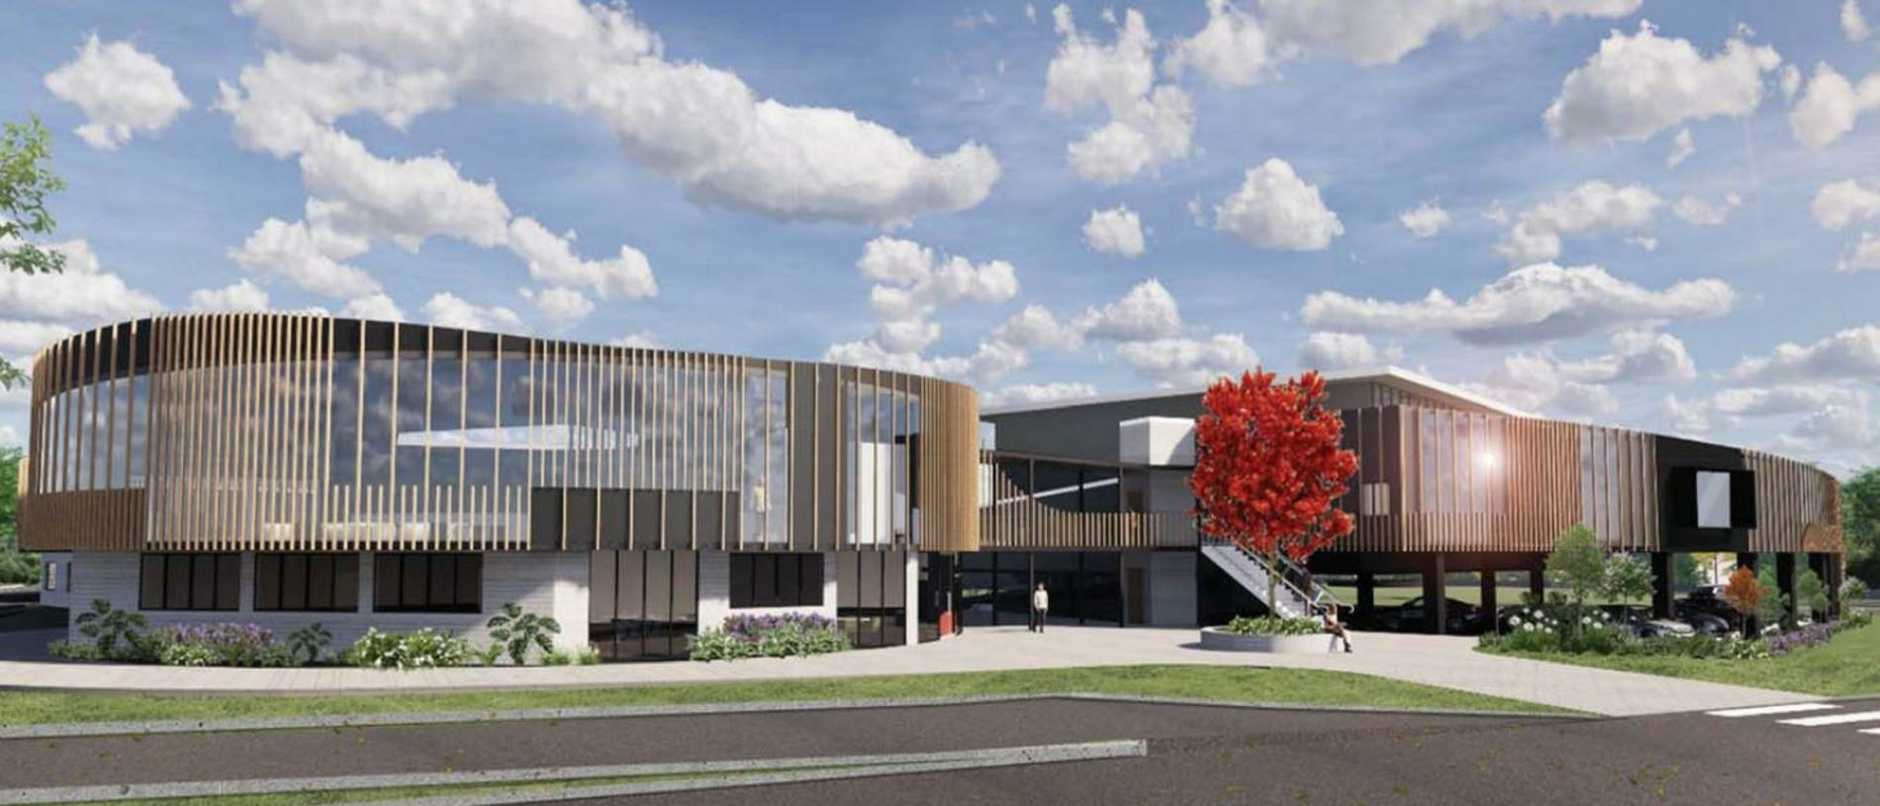 An artist's impression of the new Catholic co-ed high school at Fitzgibbon. Image: DTS Group Qld Pty Ltd report